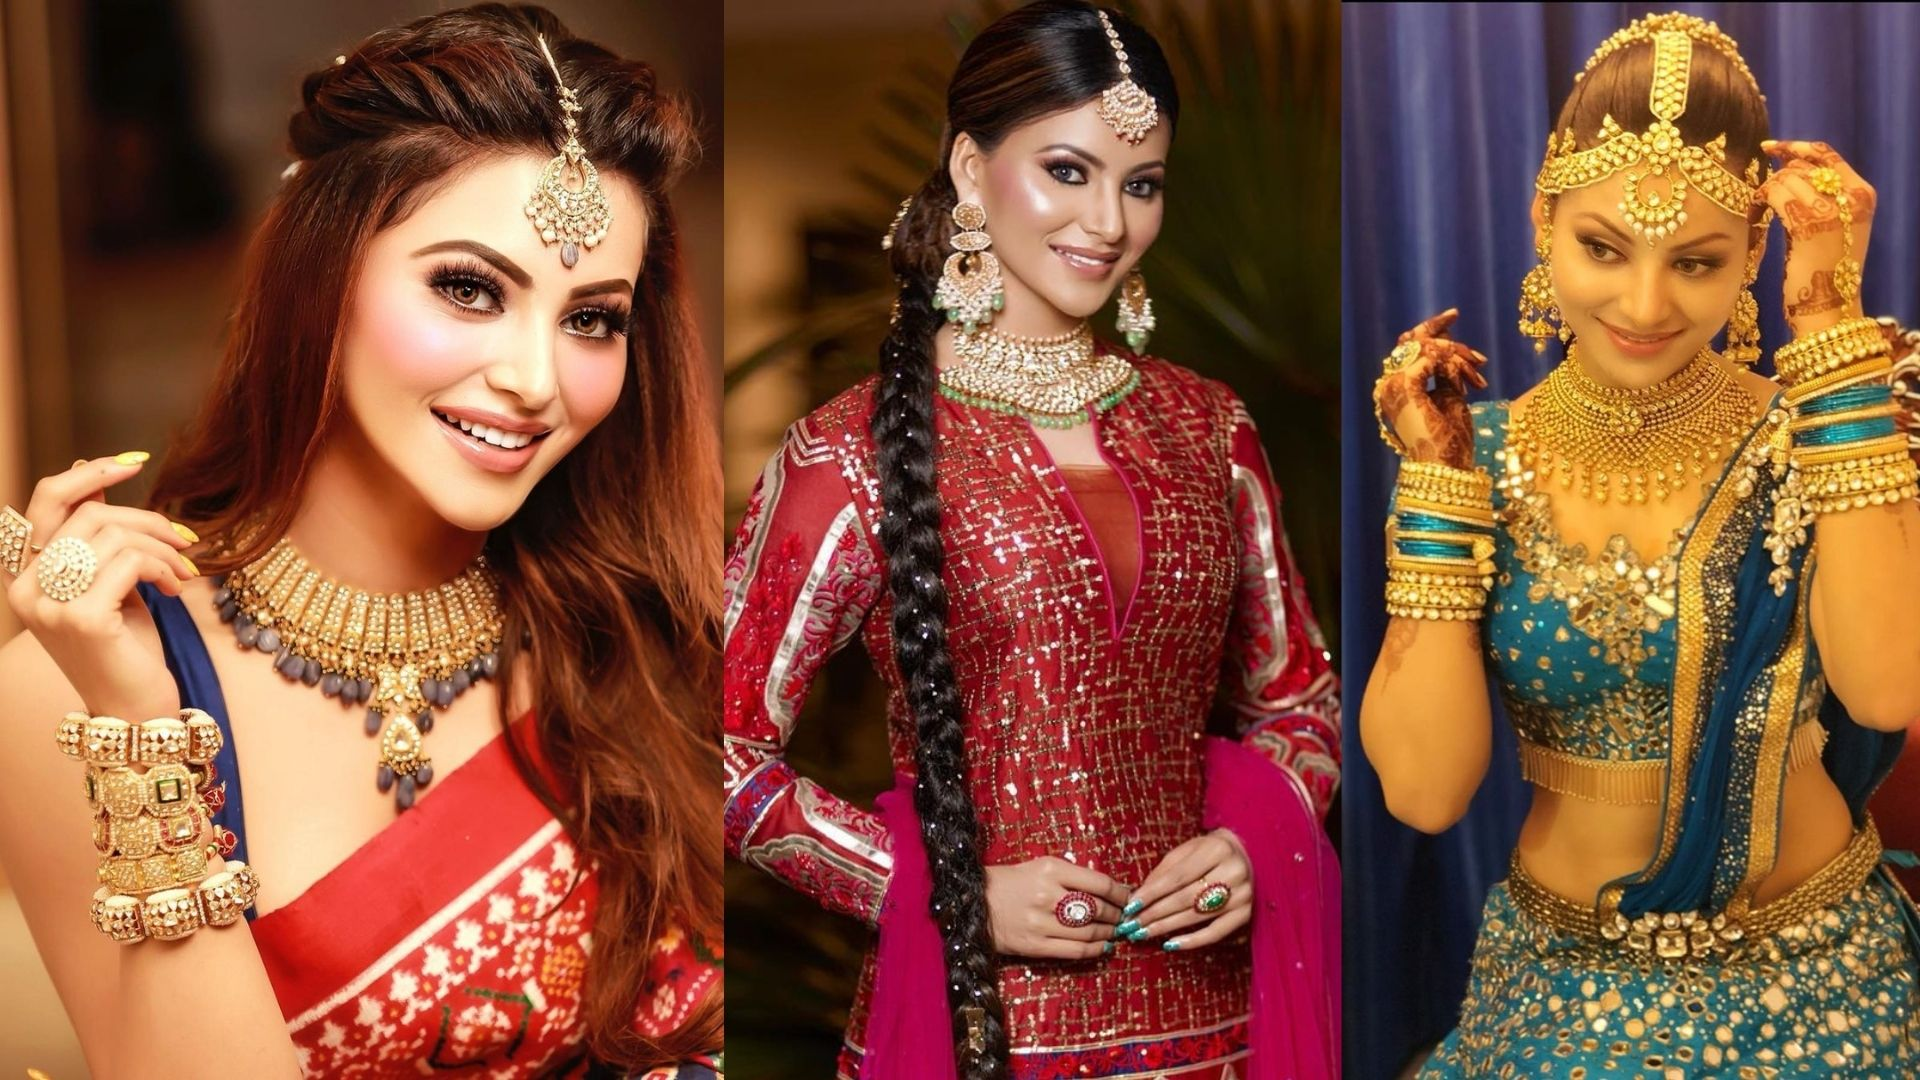 Karwa Chauth 2021: Urvashi Rautela's Top 3 Traditional Looks That Are Perfect To Wear On The Festival